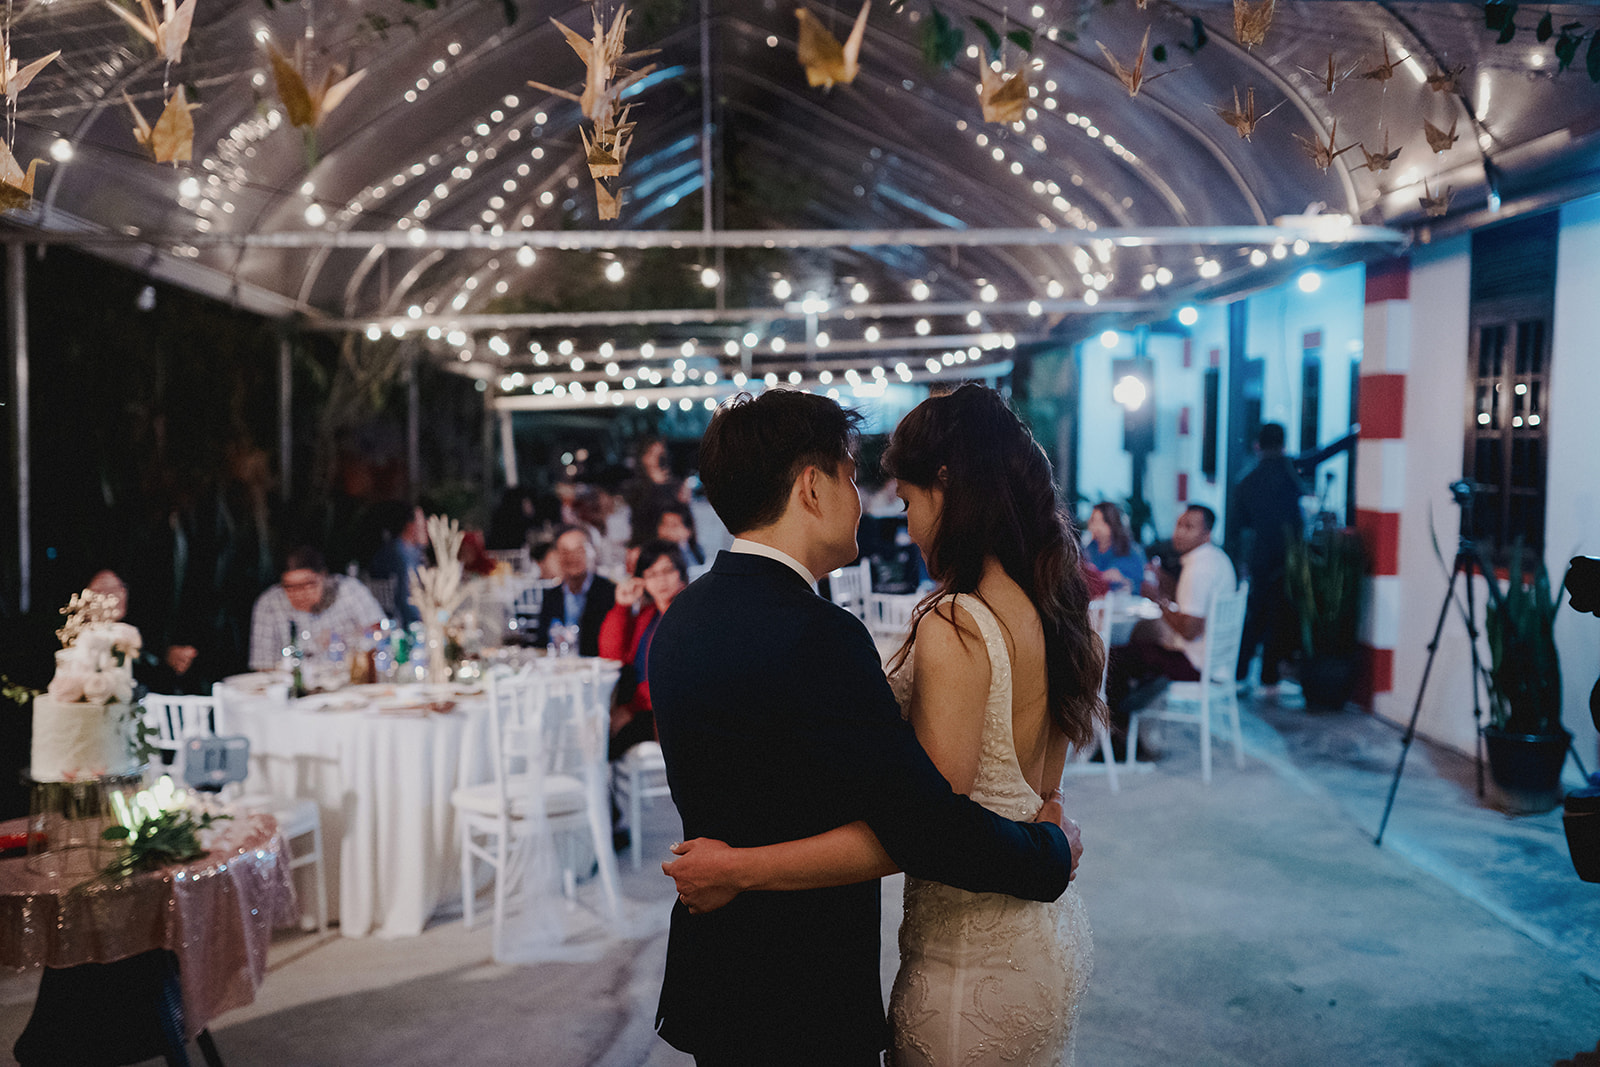 for our first dance, we awkwardly danced to norah jones - come away with me ~ it's one of my very favorite song hehe :)